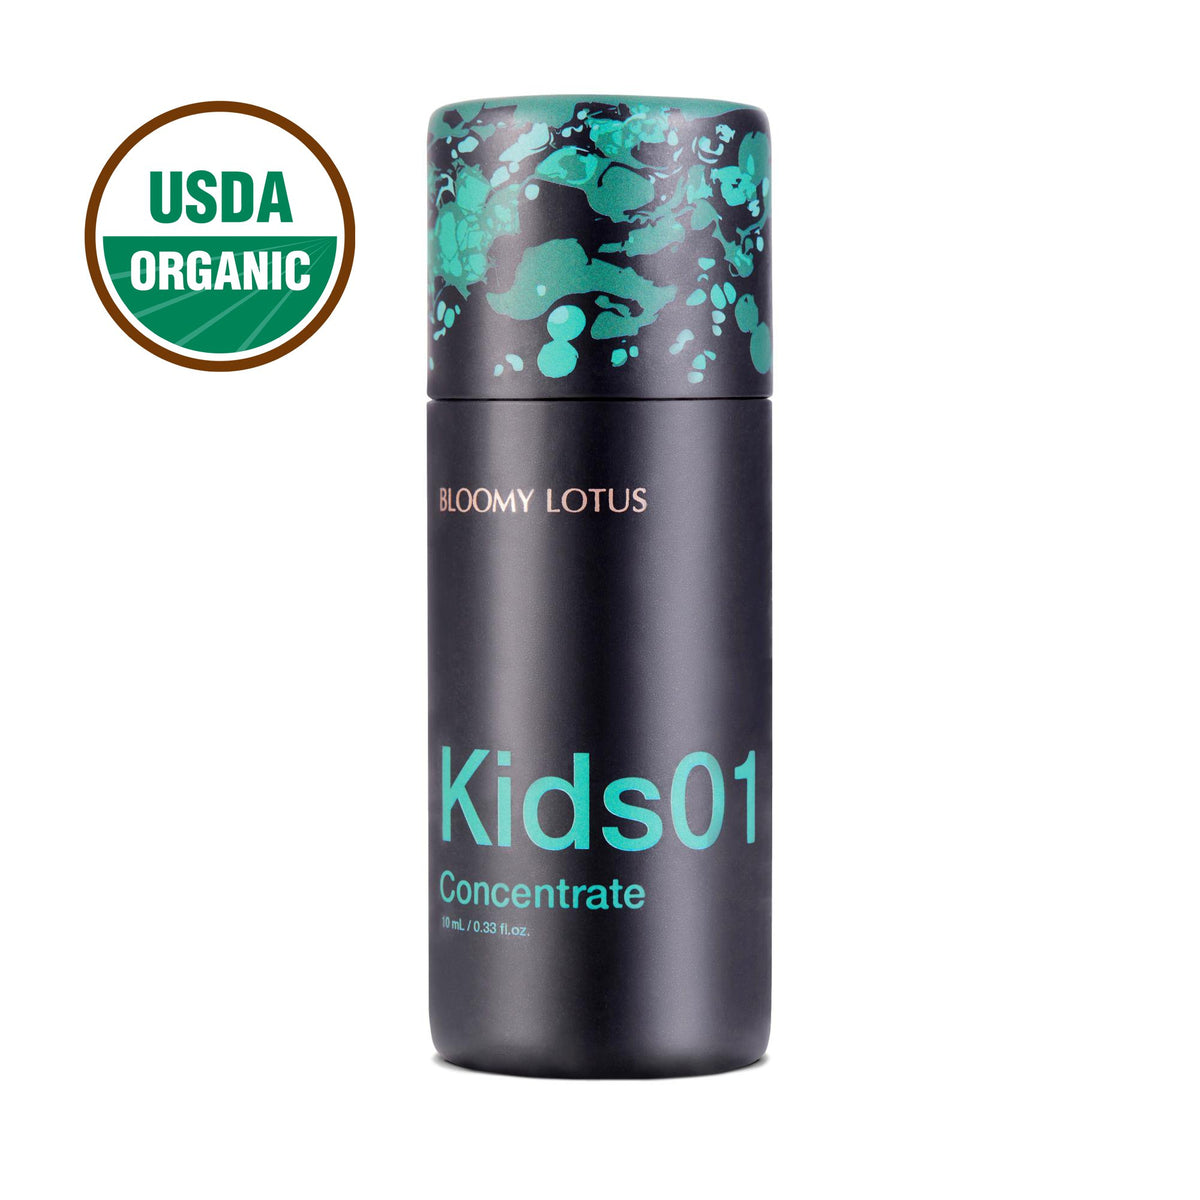 Kids01 Concentration Essential Oil, 10 ml